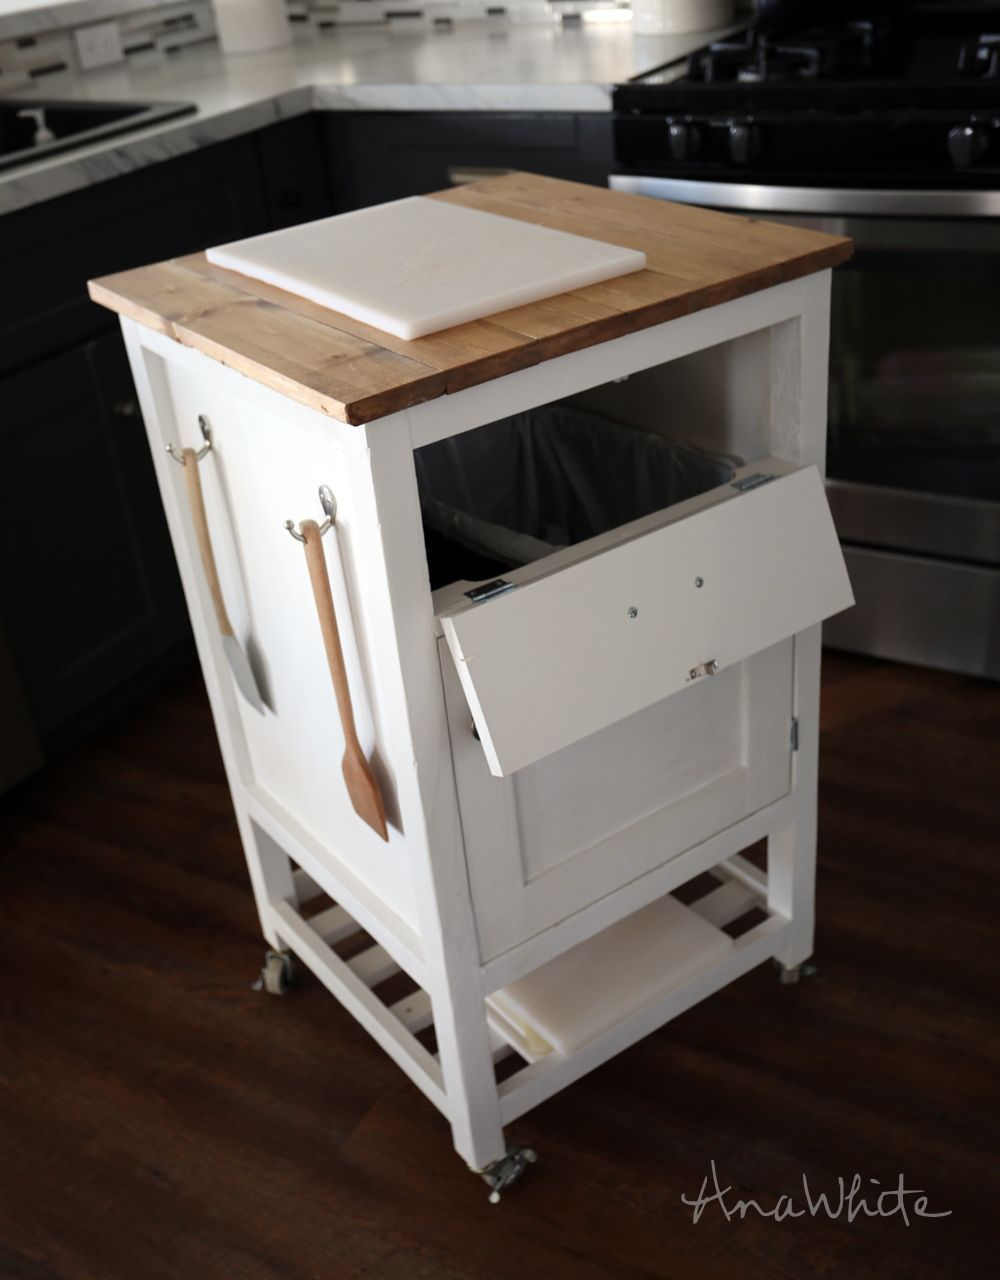 Ana White Build A How To Small Kitchen Island Prep Cart With Compost Free And Easy Diy Project And Fu Diy Kitchen Cart Kitchen Design Kitchen Island Plans